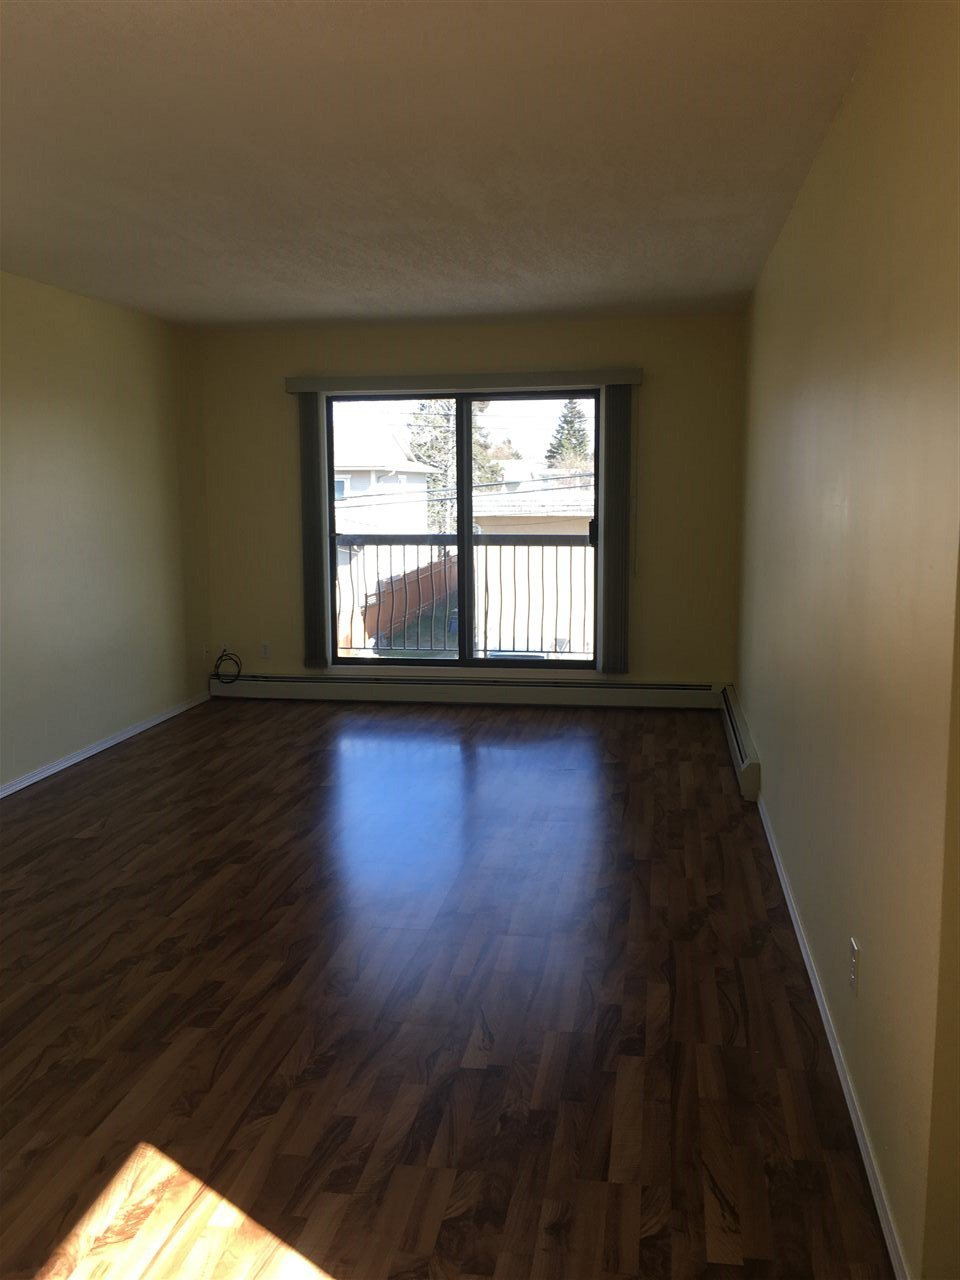 "Photo 2: Photos: 302 10216 102 Avenue in Fort St. John: Fort St. John - City NW Condo for sale in ""ALTOMAR APARTMENTS"" (Fort St. John (Zone 60))  : MLS®# R2362710"